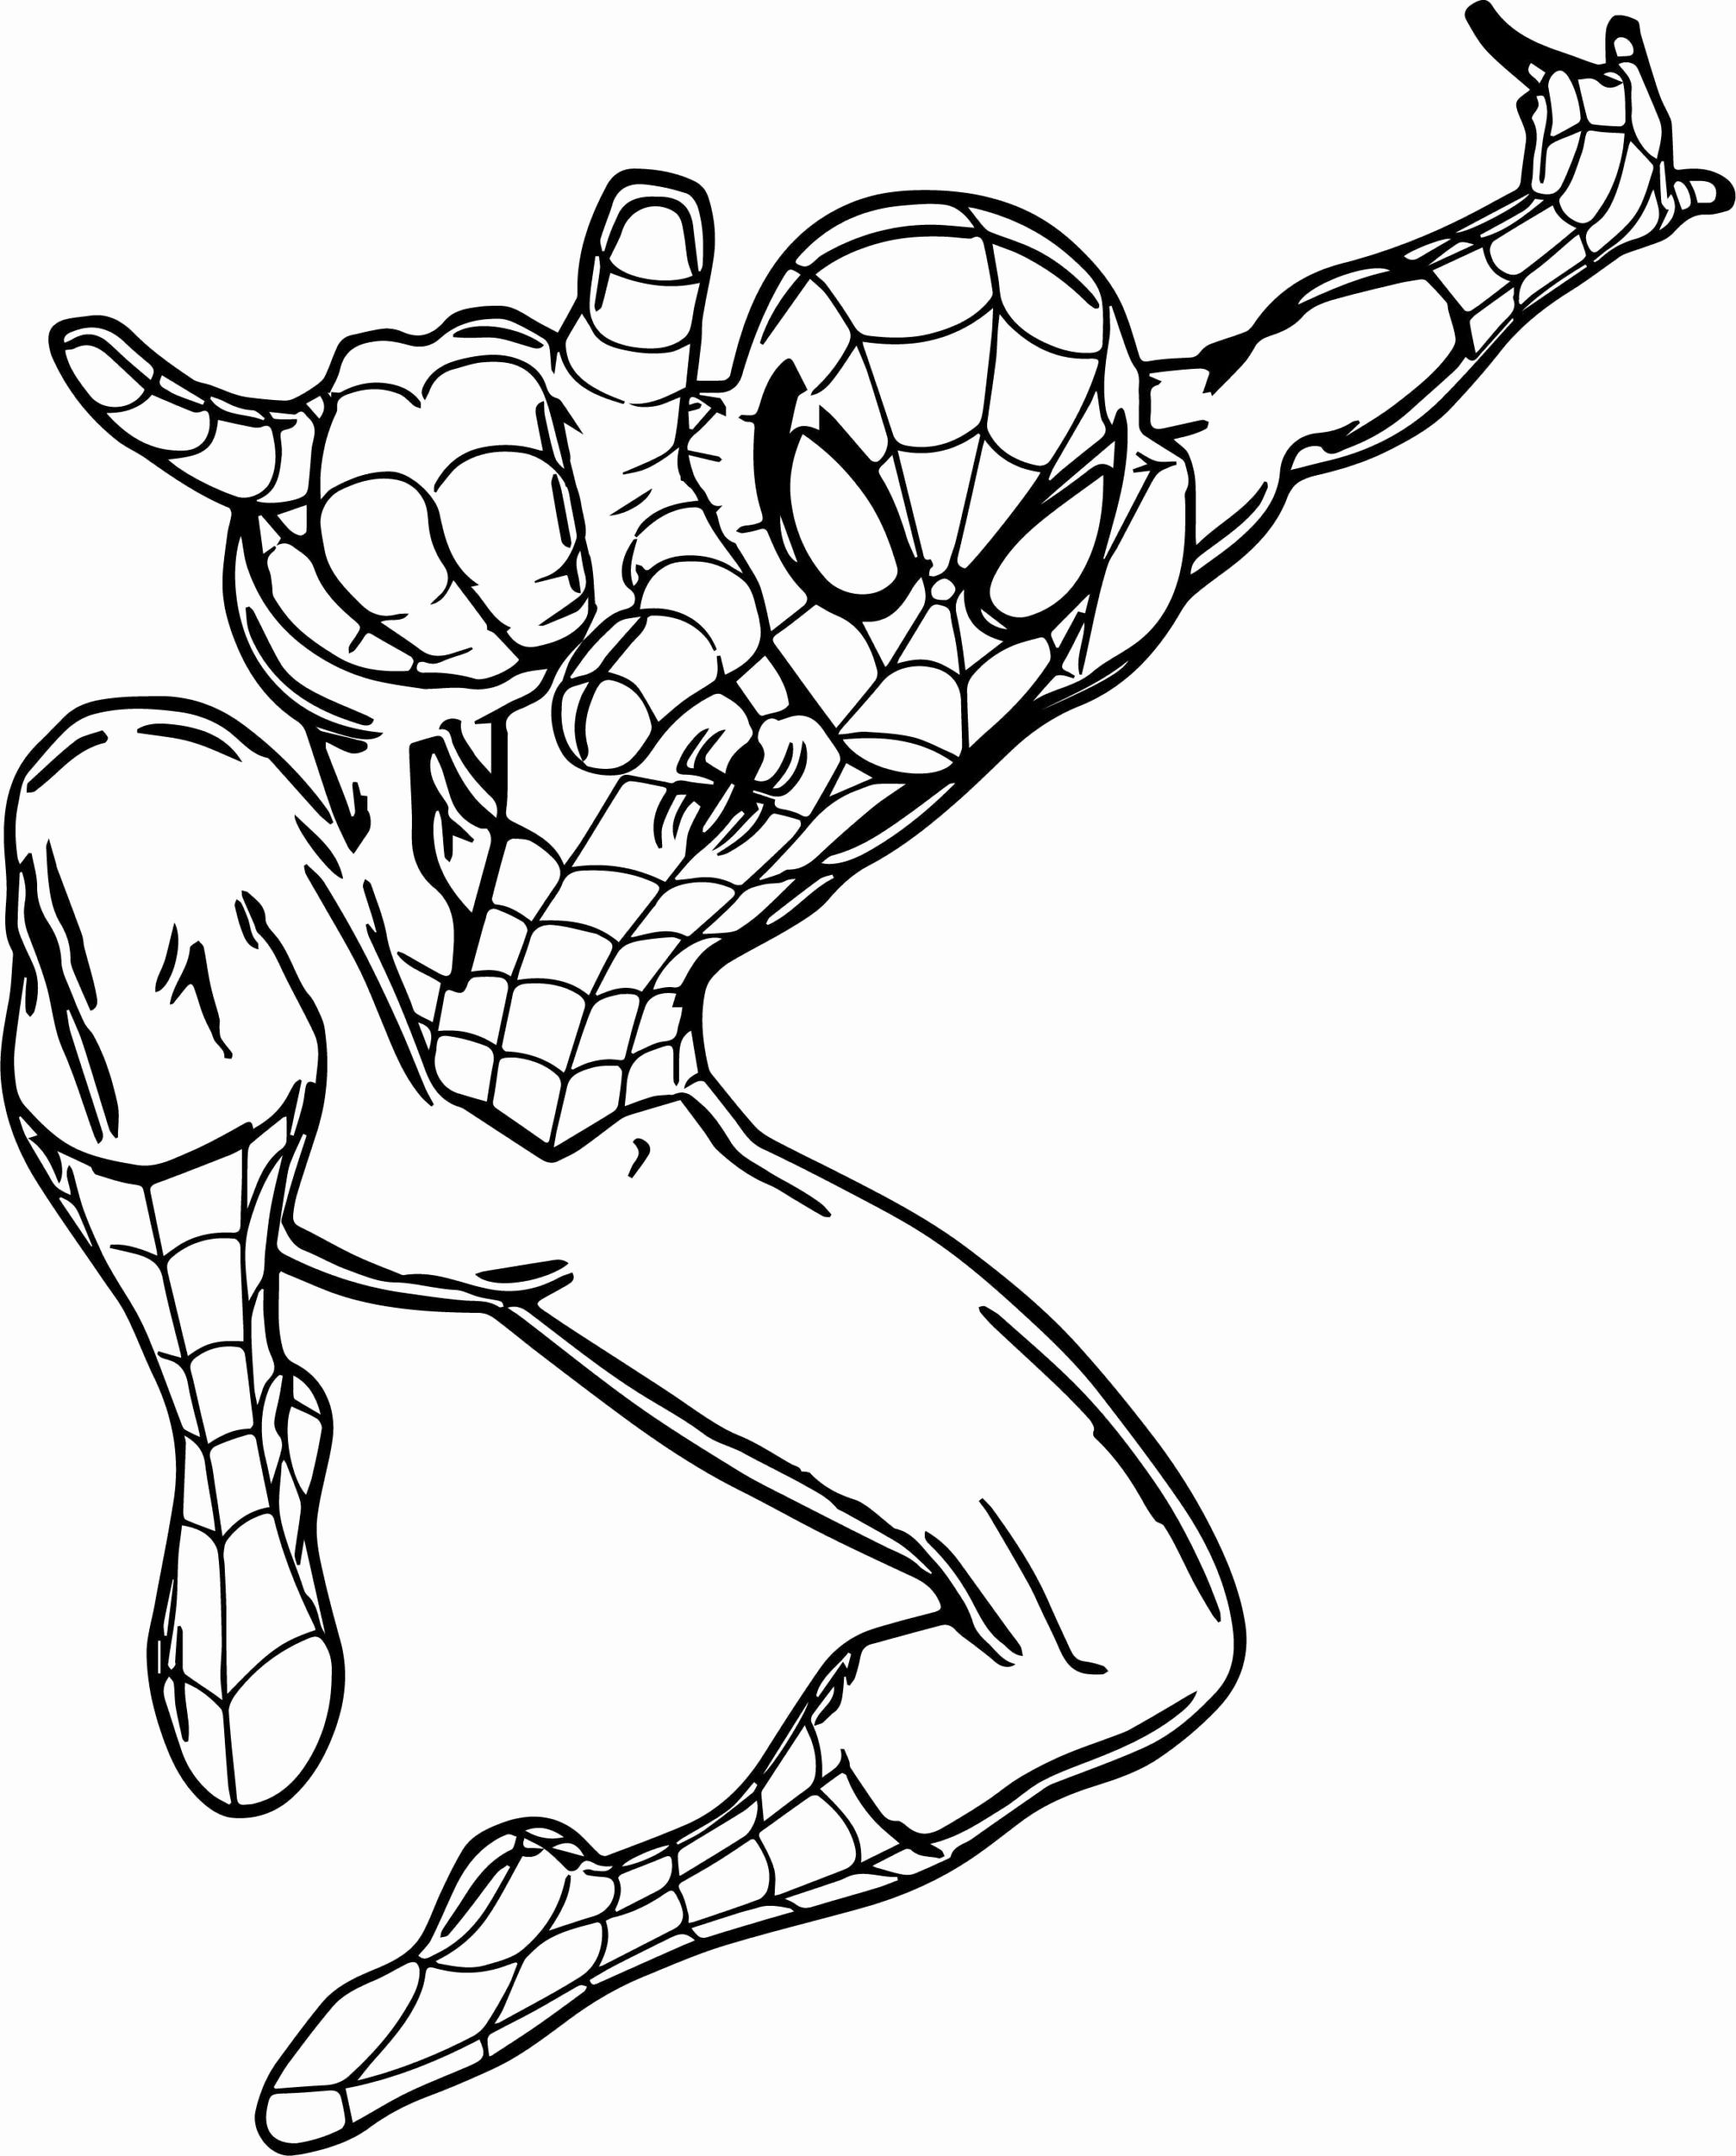 - Pin On Spiderman Coloring Pages For Kids